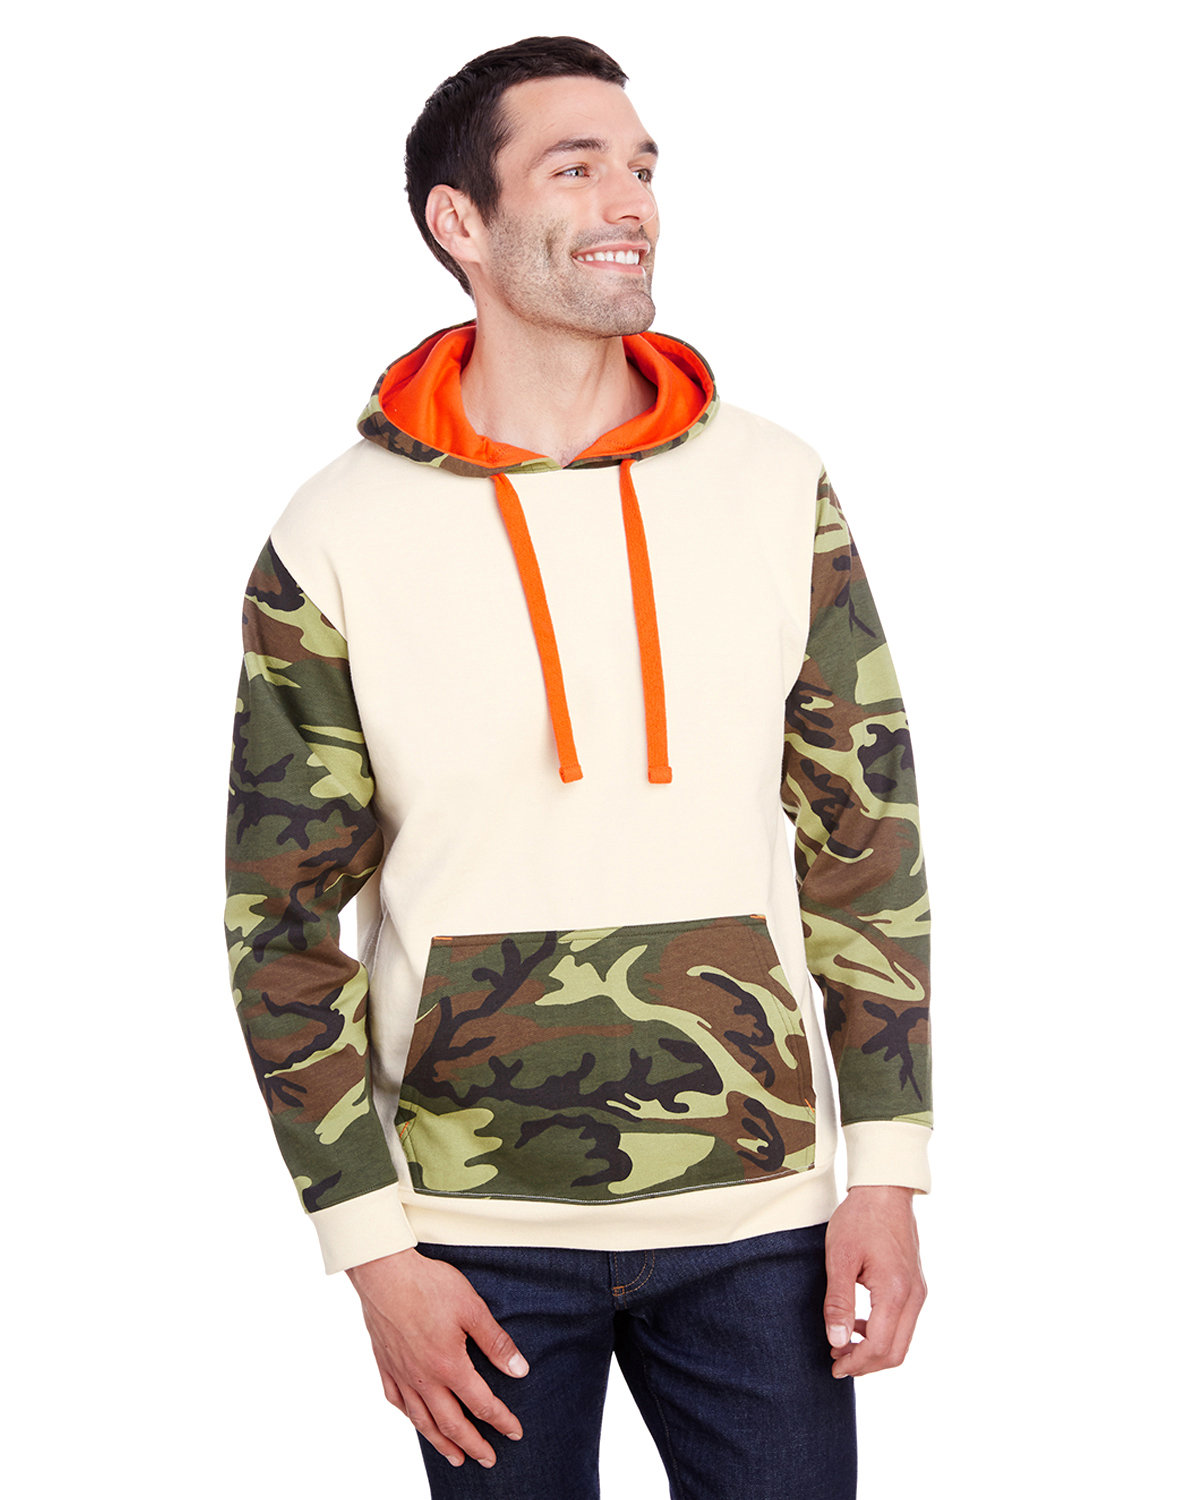 Code Five Men's Fashion Camo Hooded Sweatshirt NTRL/ GRN WD/ OR